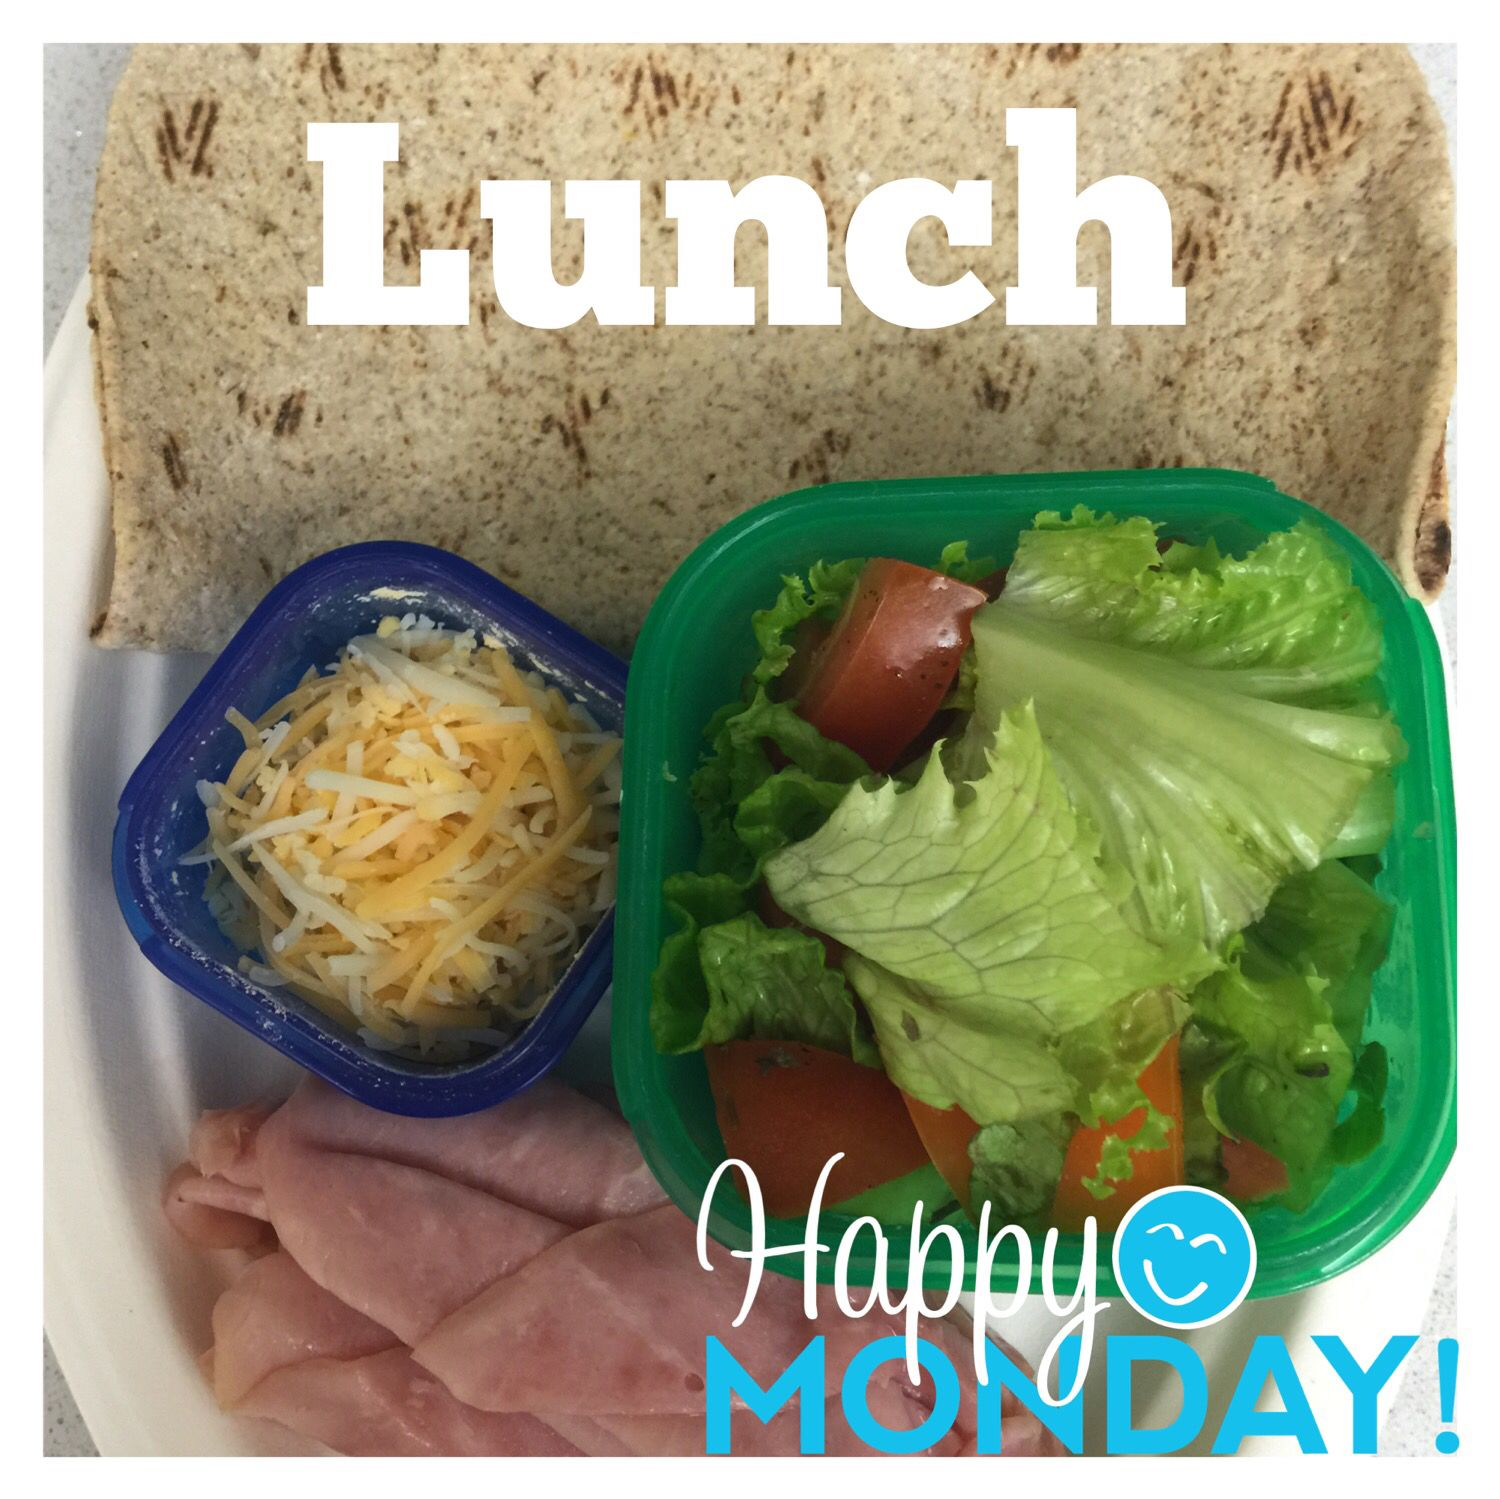 Lunch - Flat Out Tortilla, Dijon mustard, sliced ham, salad, shredded cheese - no calorie counting - used portion control containers!  Find me on Facebook - Michelle.Tull.79